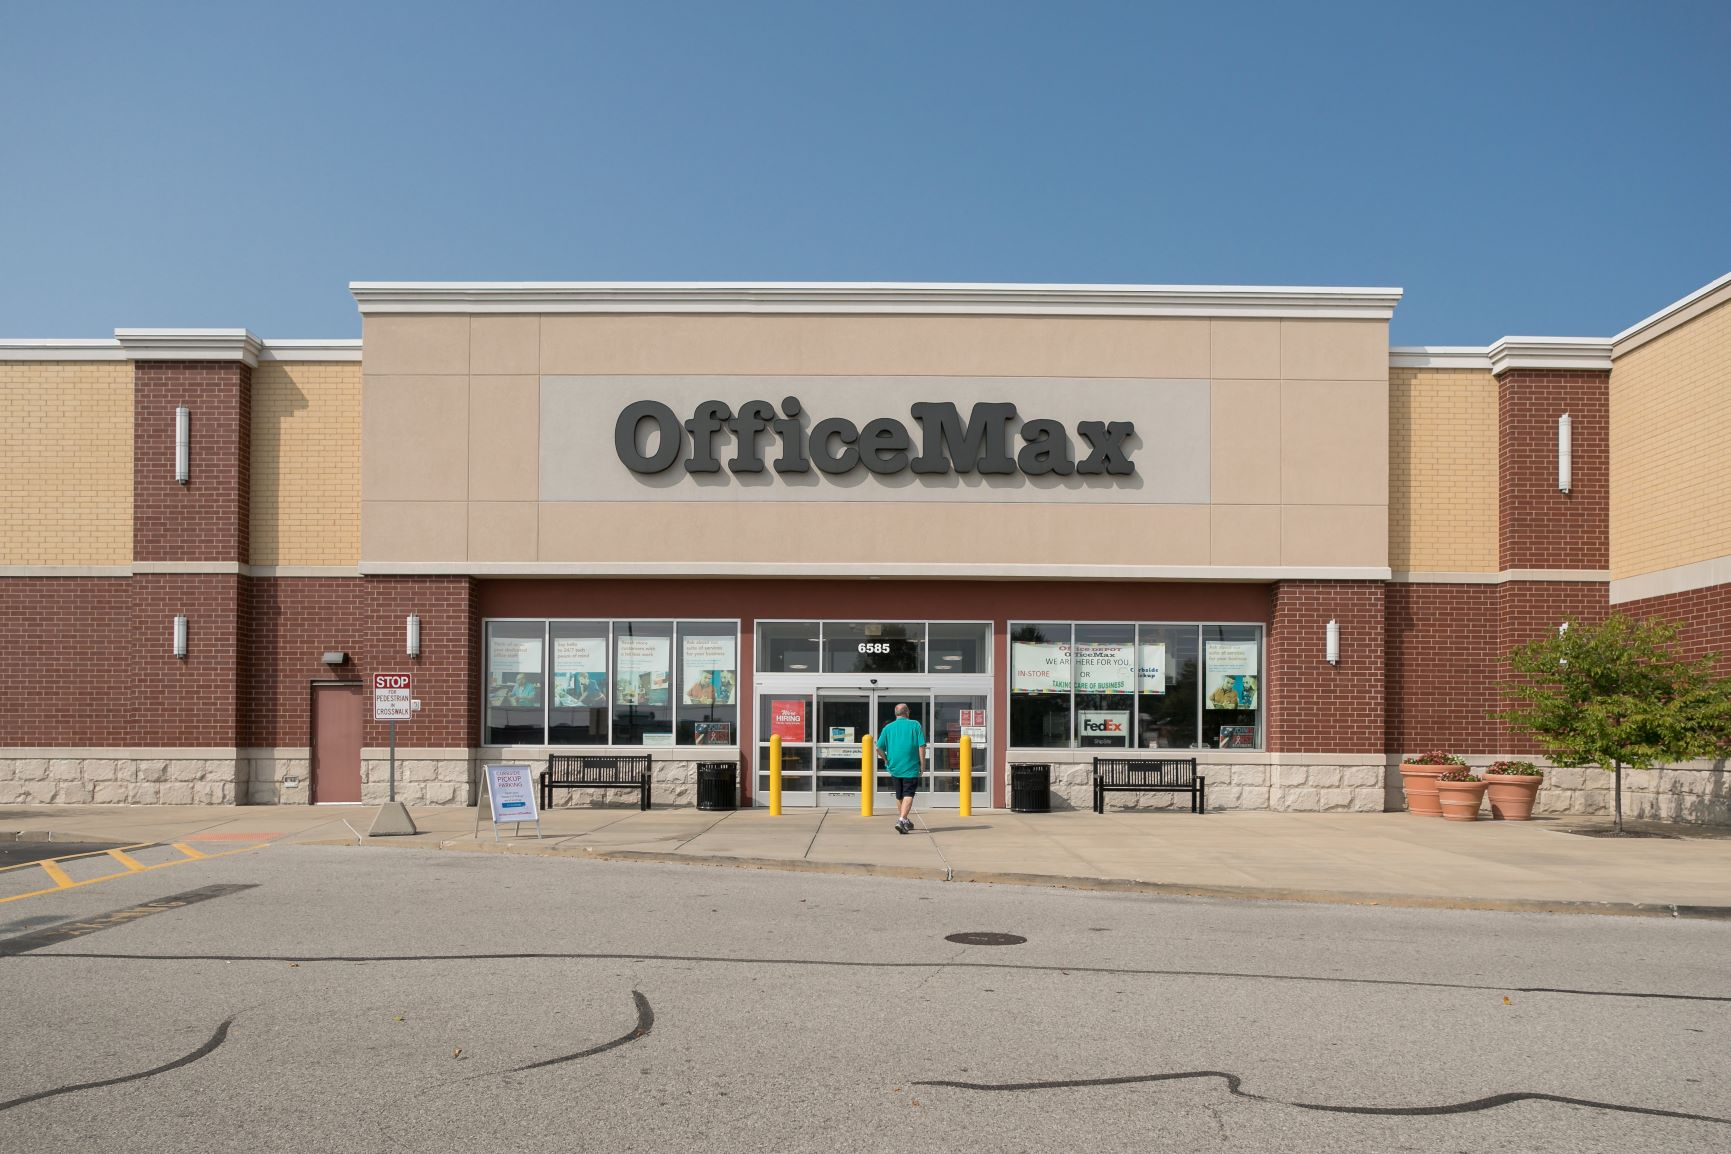 Fairview Heights - Office Max